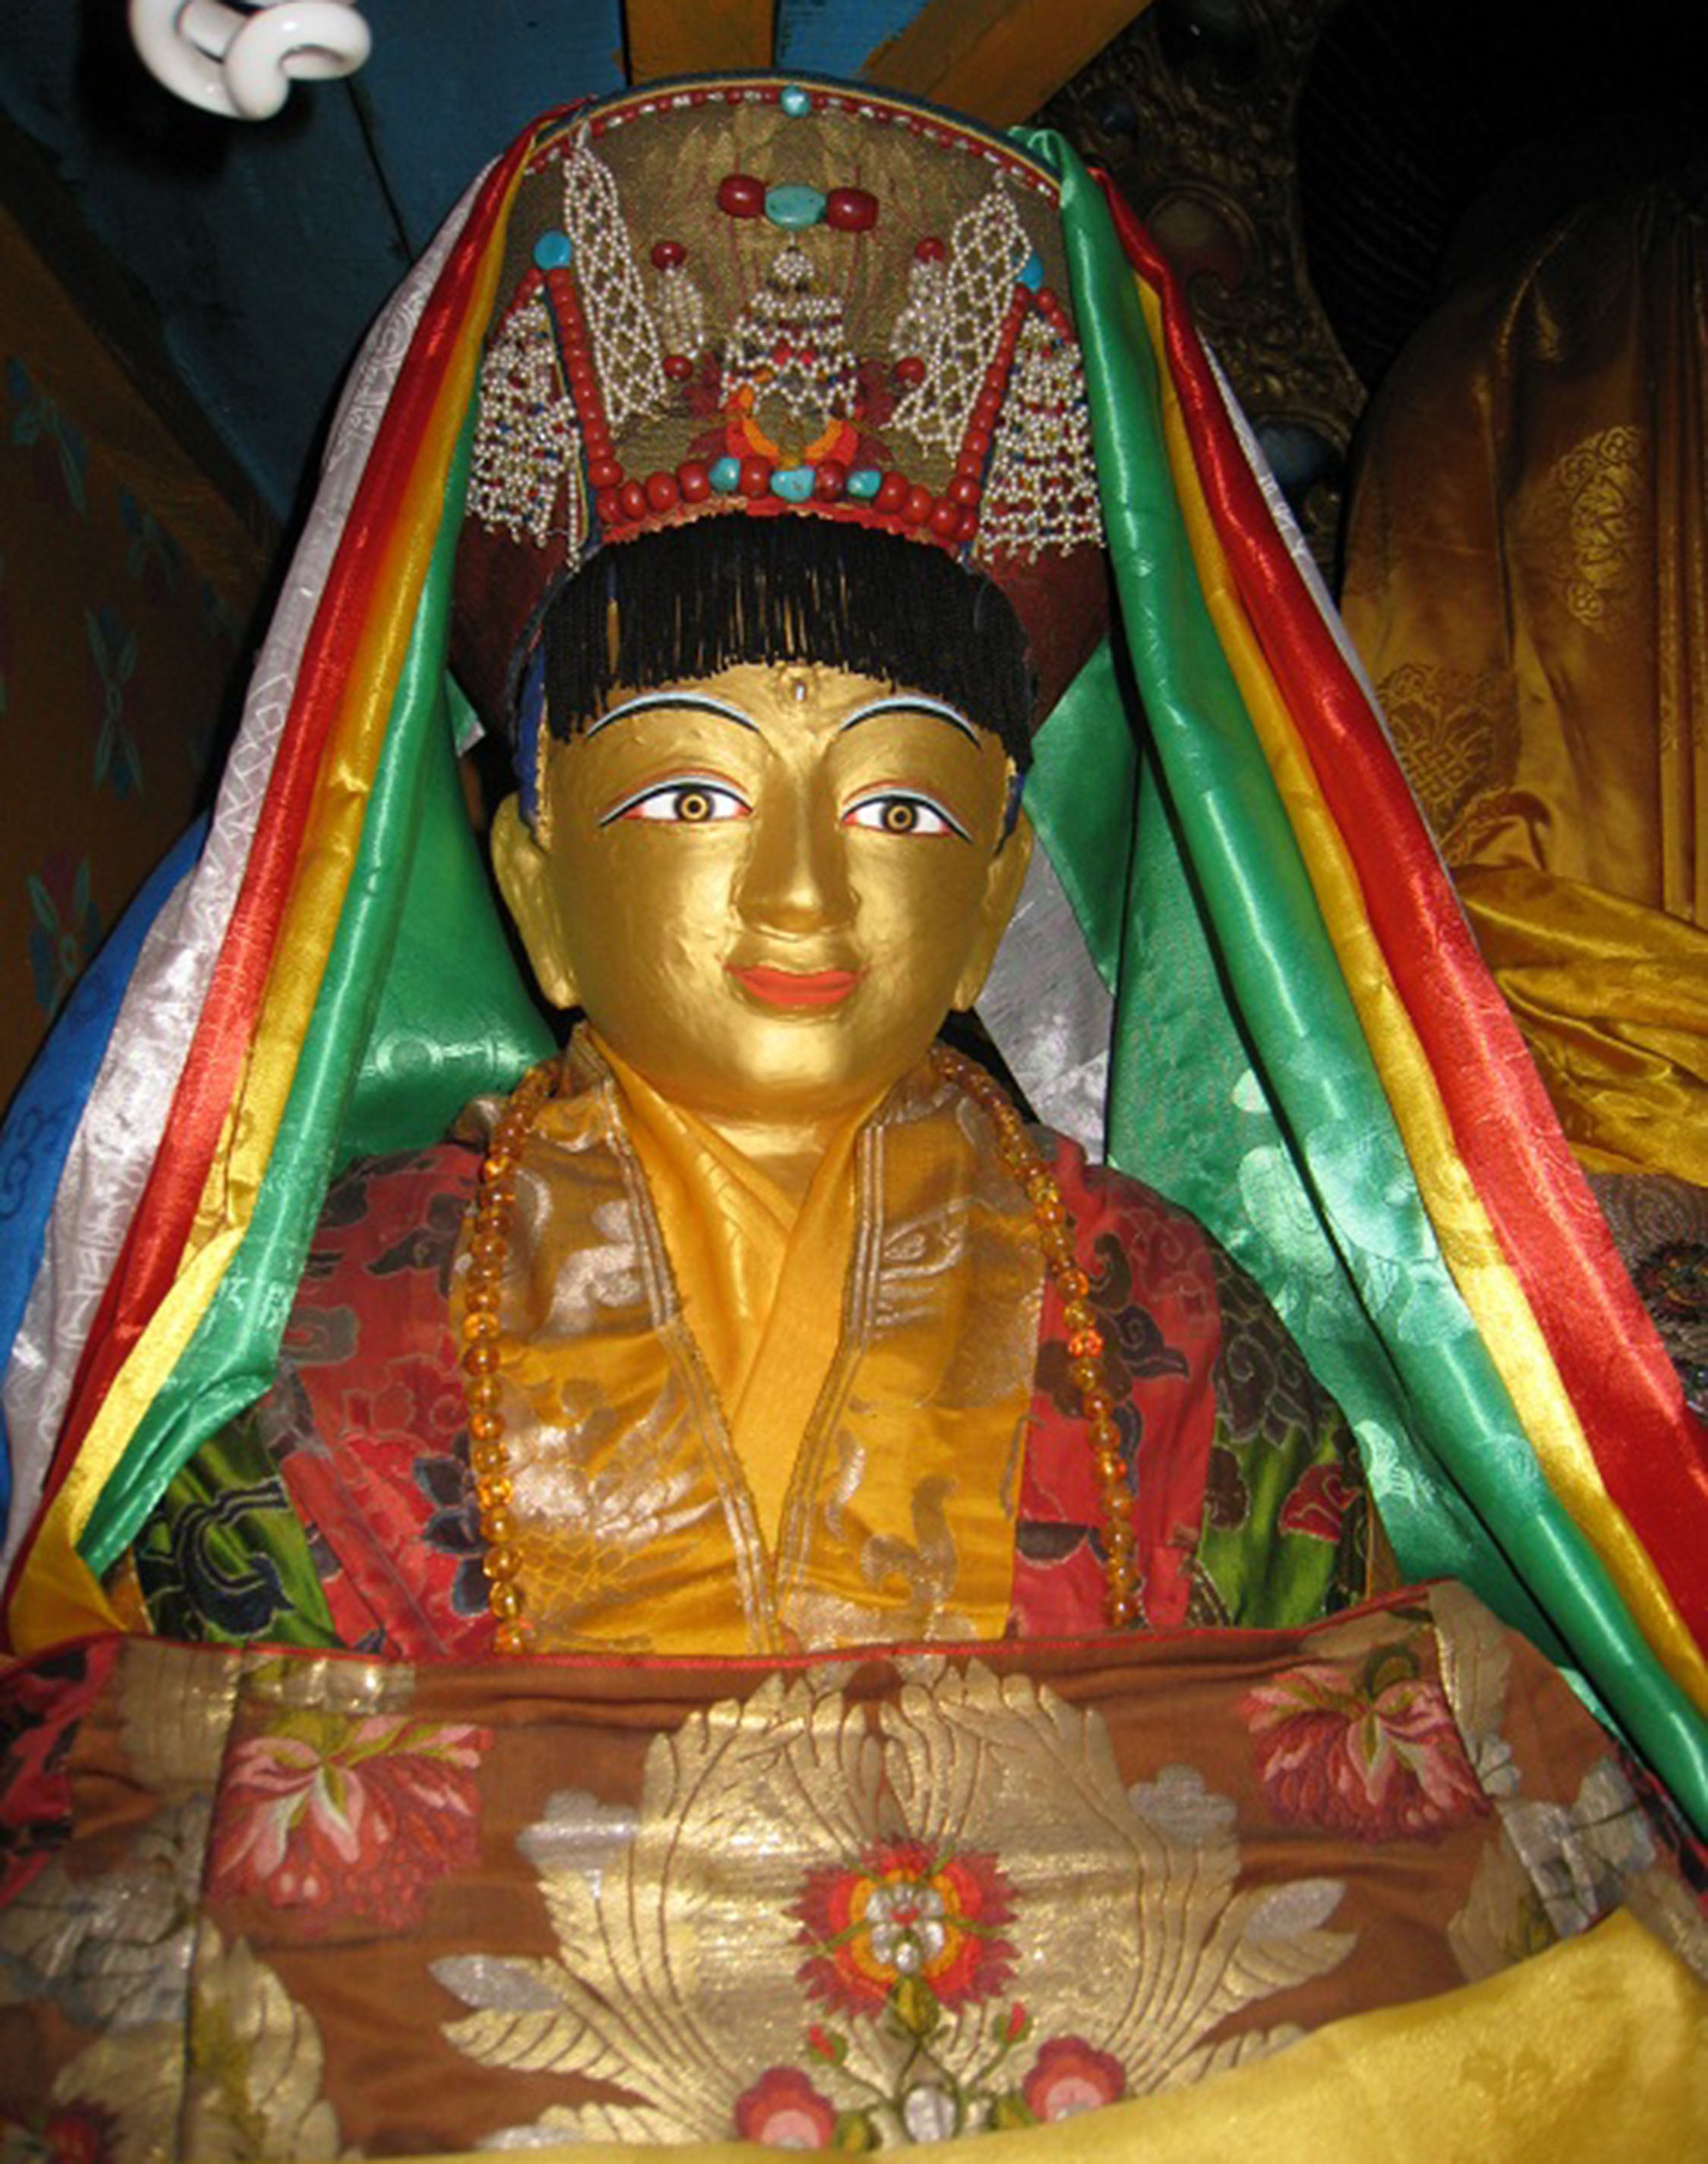 A rare statue of Jetsun Milarepa (1052— 1135 CE) made by his heart-disciple, Rechungpa during his lifetime.